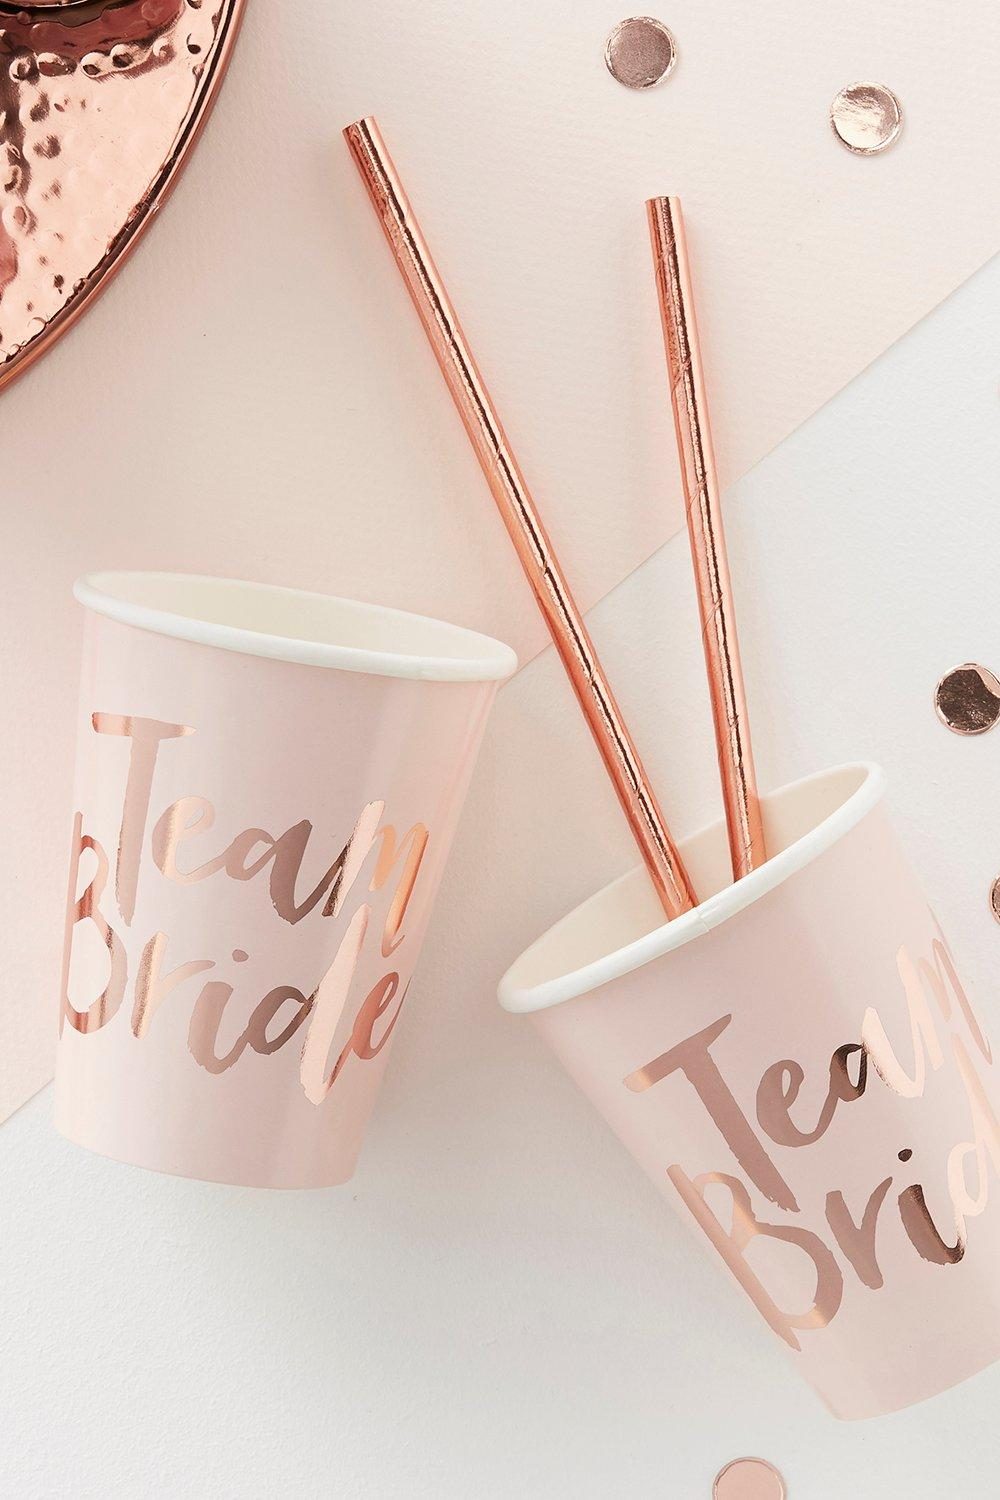 Bride Hen Party Cups 8 Pack - rose gold - Team Bri